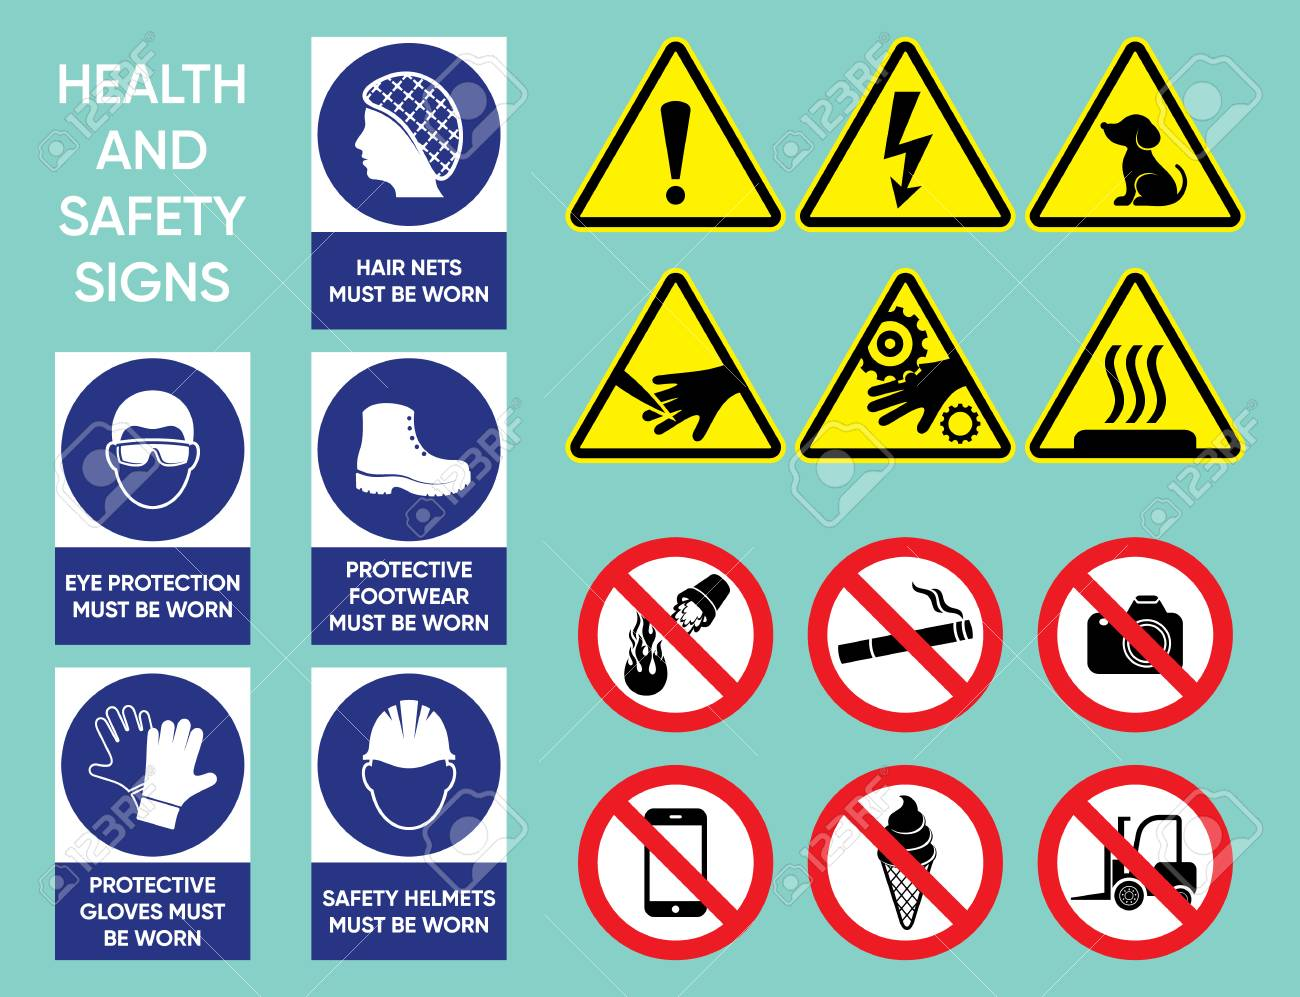 Health and safety signs collection royalty free cliparts vectors health and safety signs collection stock vector 86699542 biocorpaavc